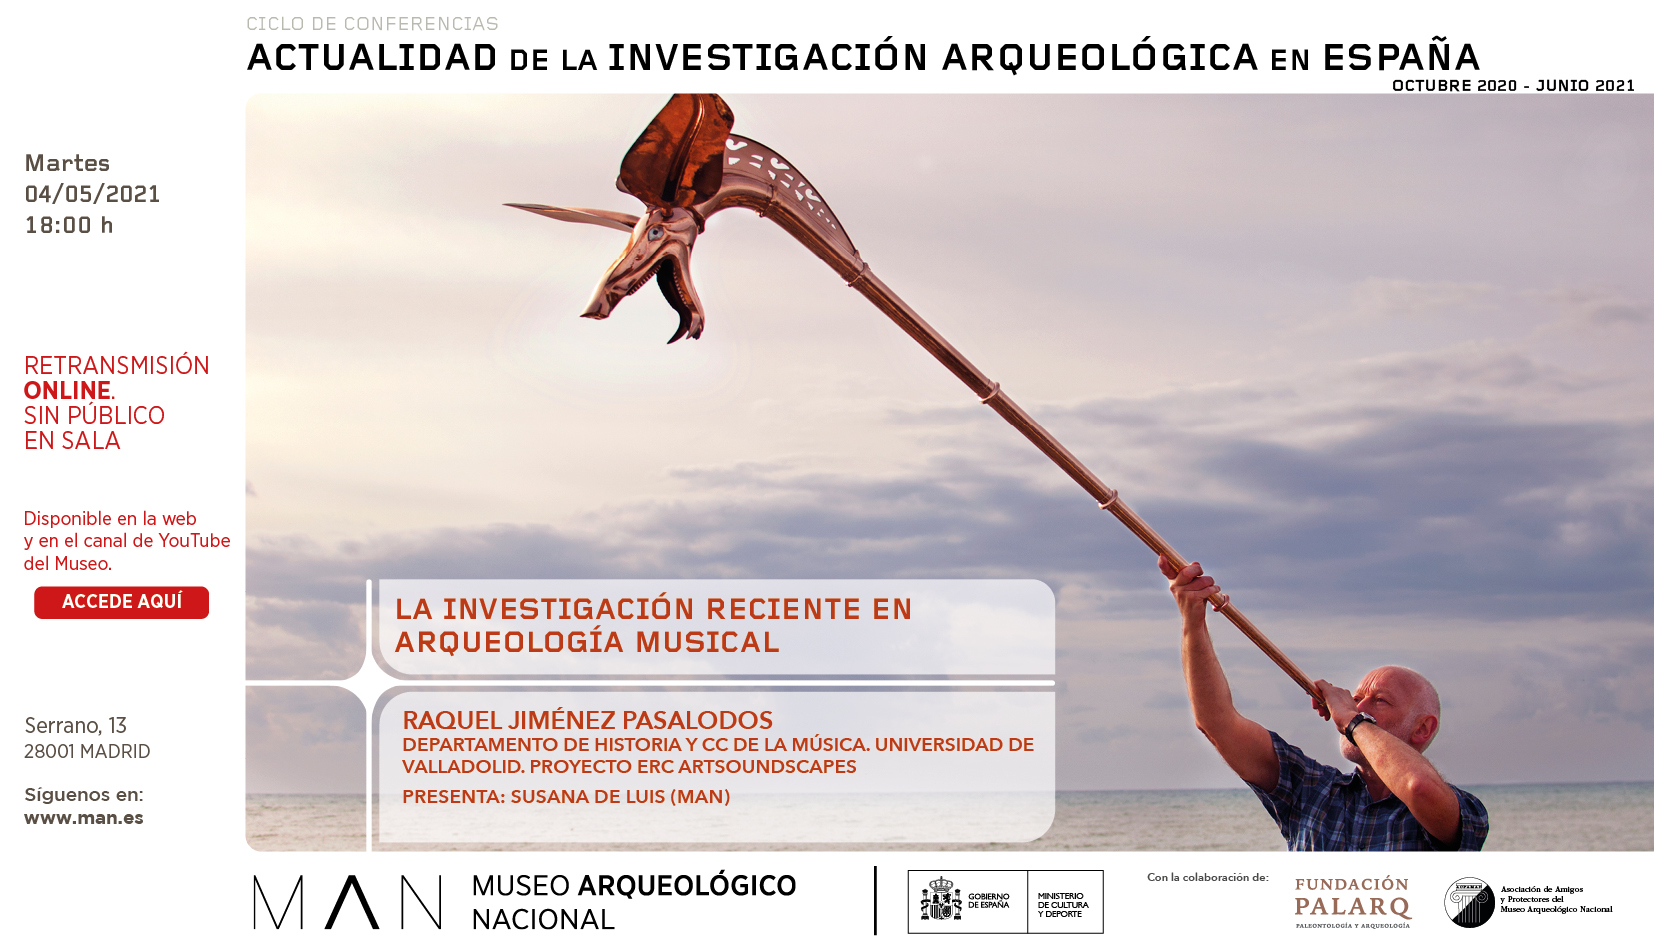 Conference on the Archaeology of Soundscapes